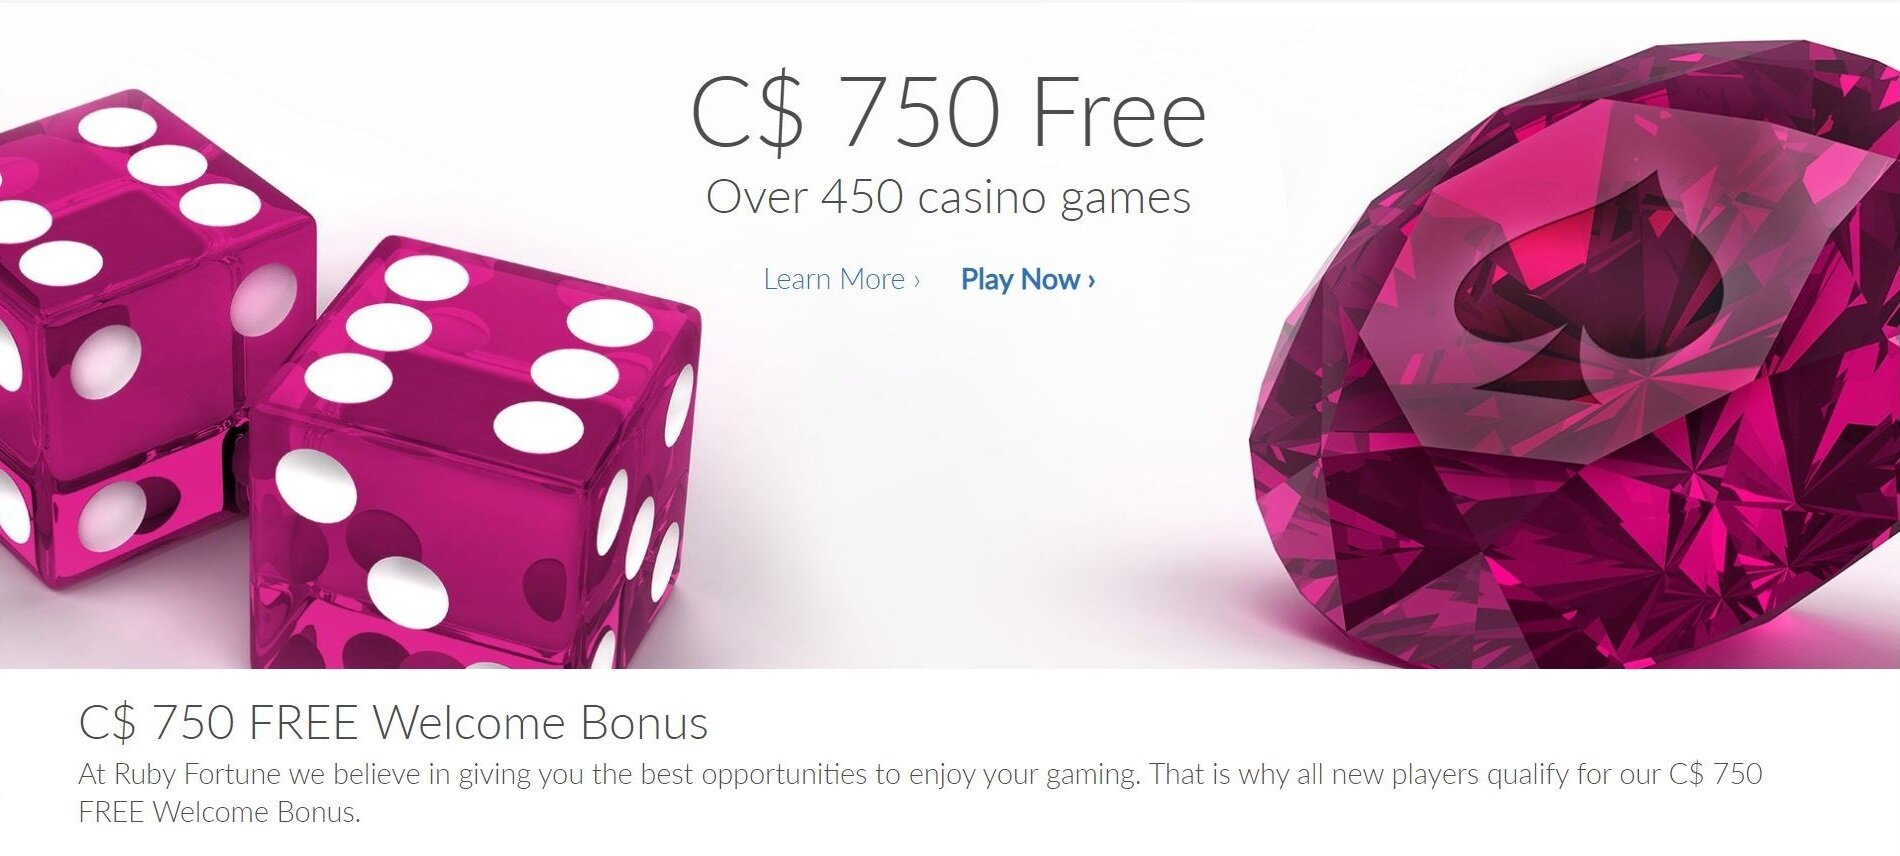 Welcome bonus section of Ruby Fortune Casino website